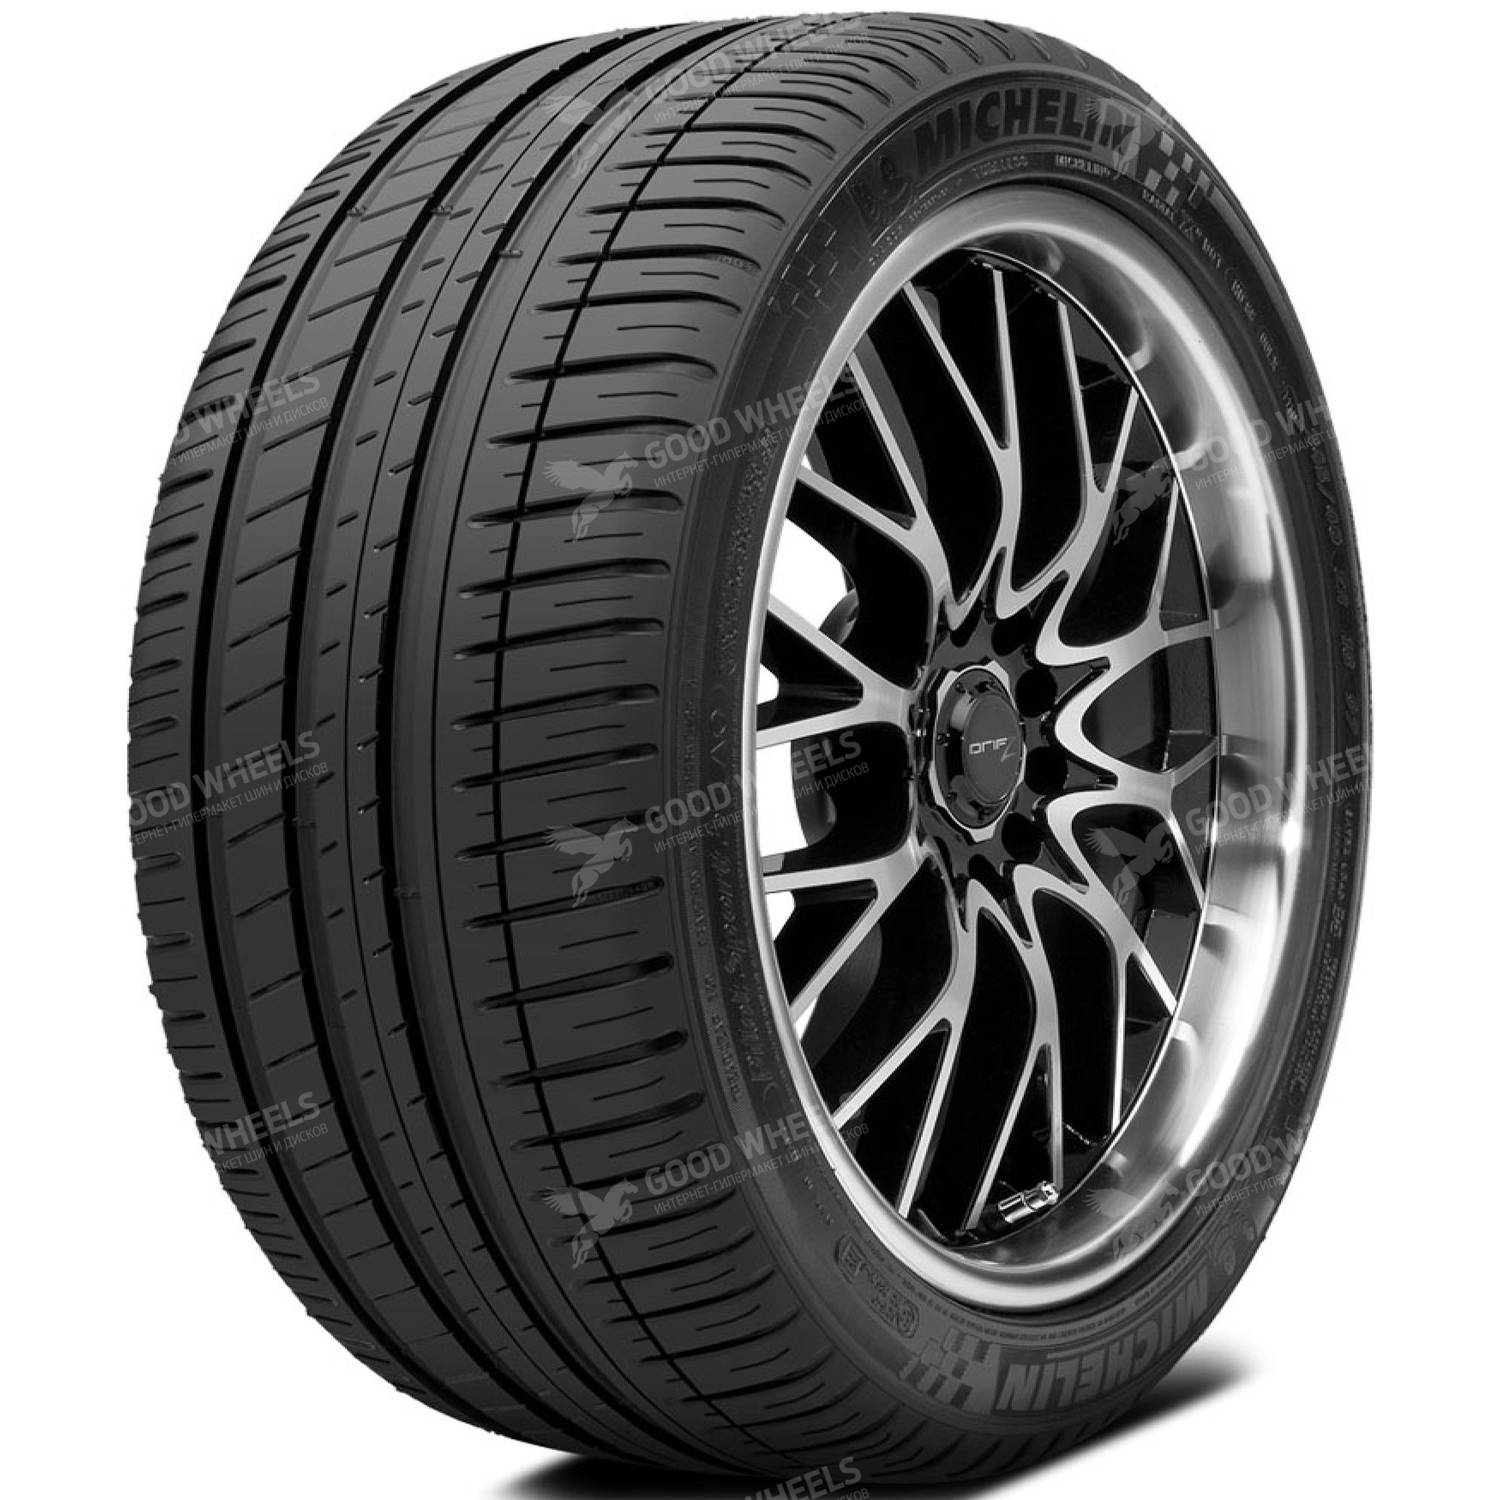 Michelin Pilot Sport 3 (PS3) 285/35 R20 104Y